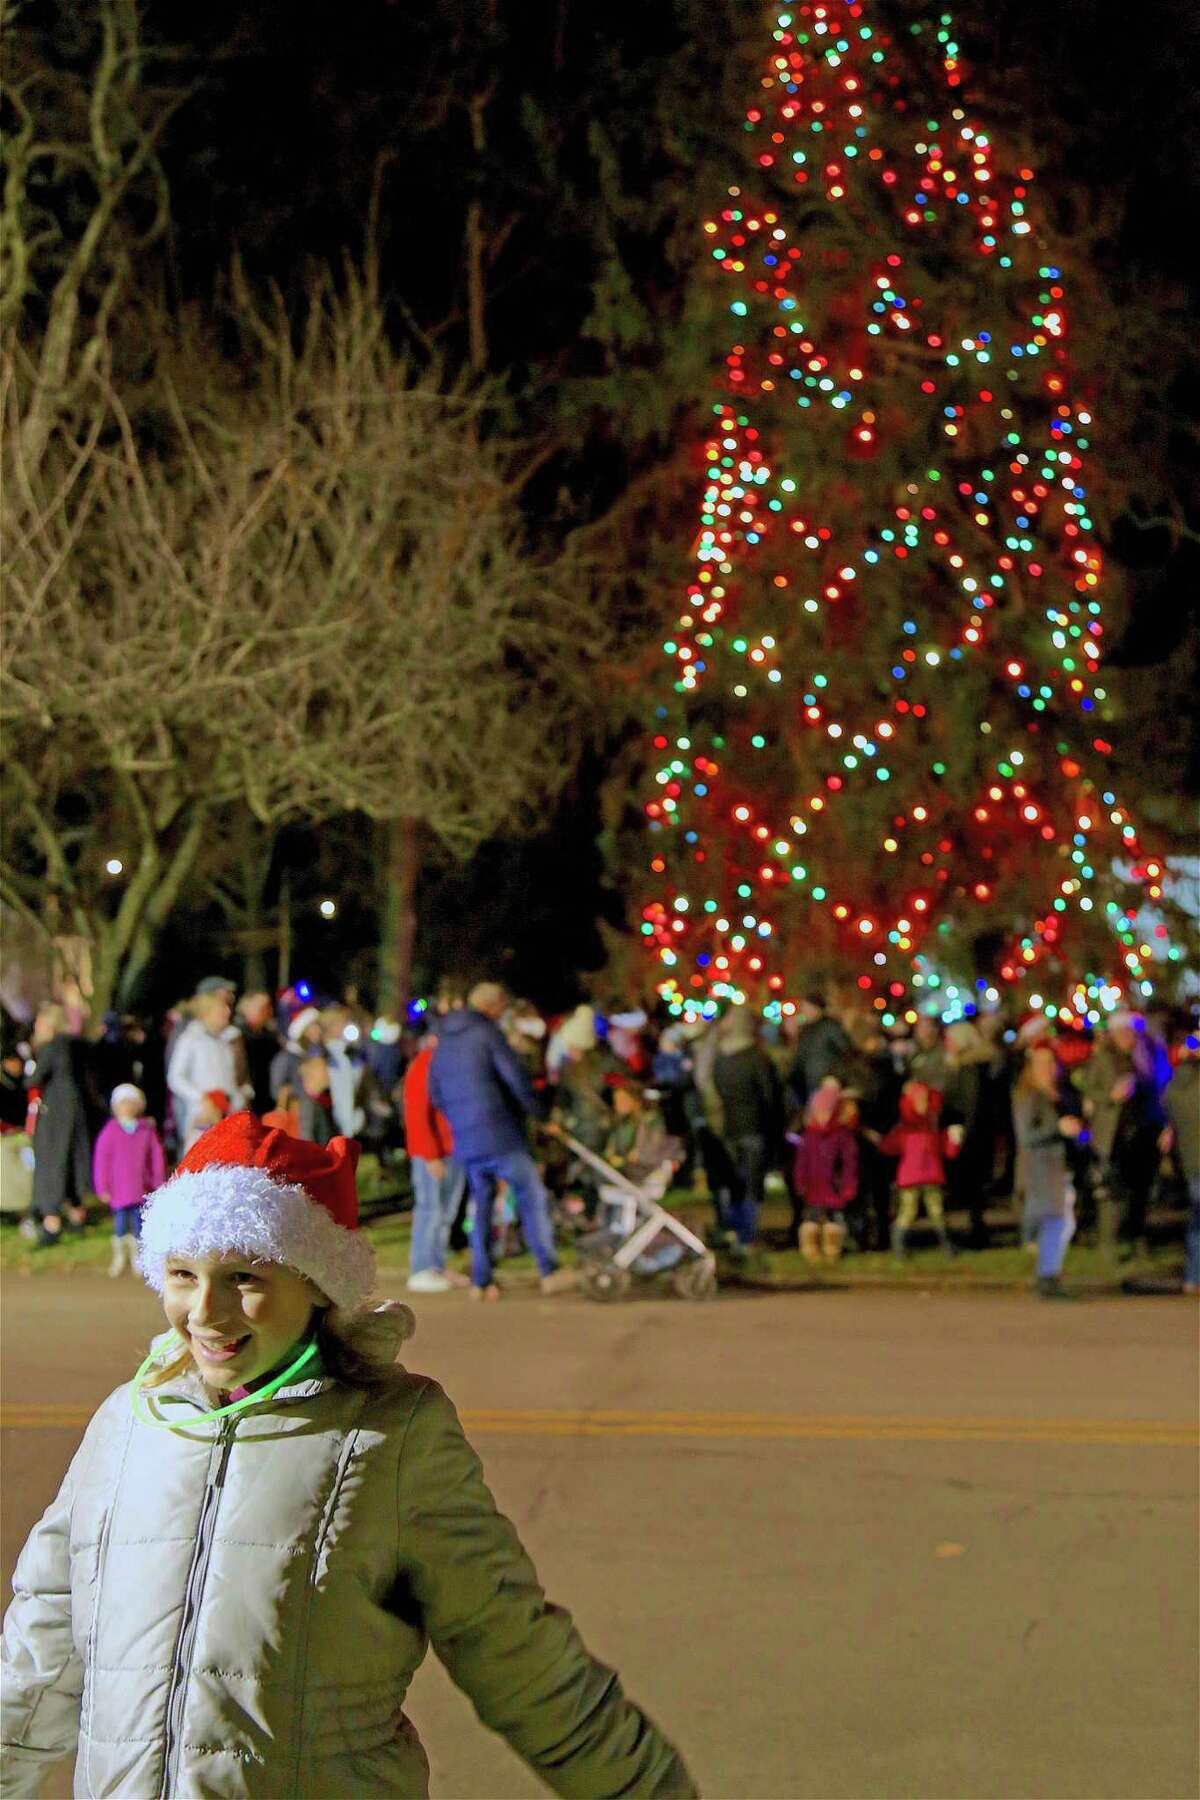 Charlotte Rotelli, 11, of Fairfield, poses for a picture just after the lights went on at the annual tree lighting at Town Hall on Friday, Dec. 6, 2019, in Fairfield, Conn.